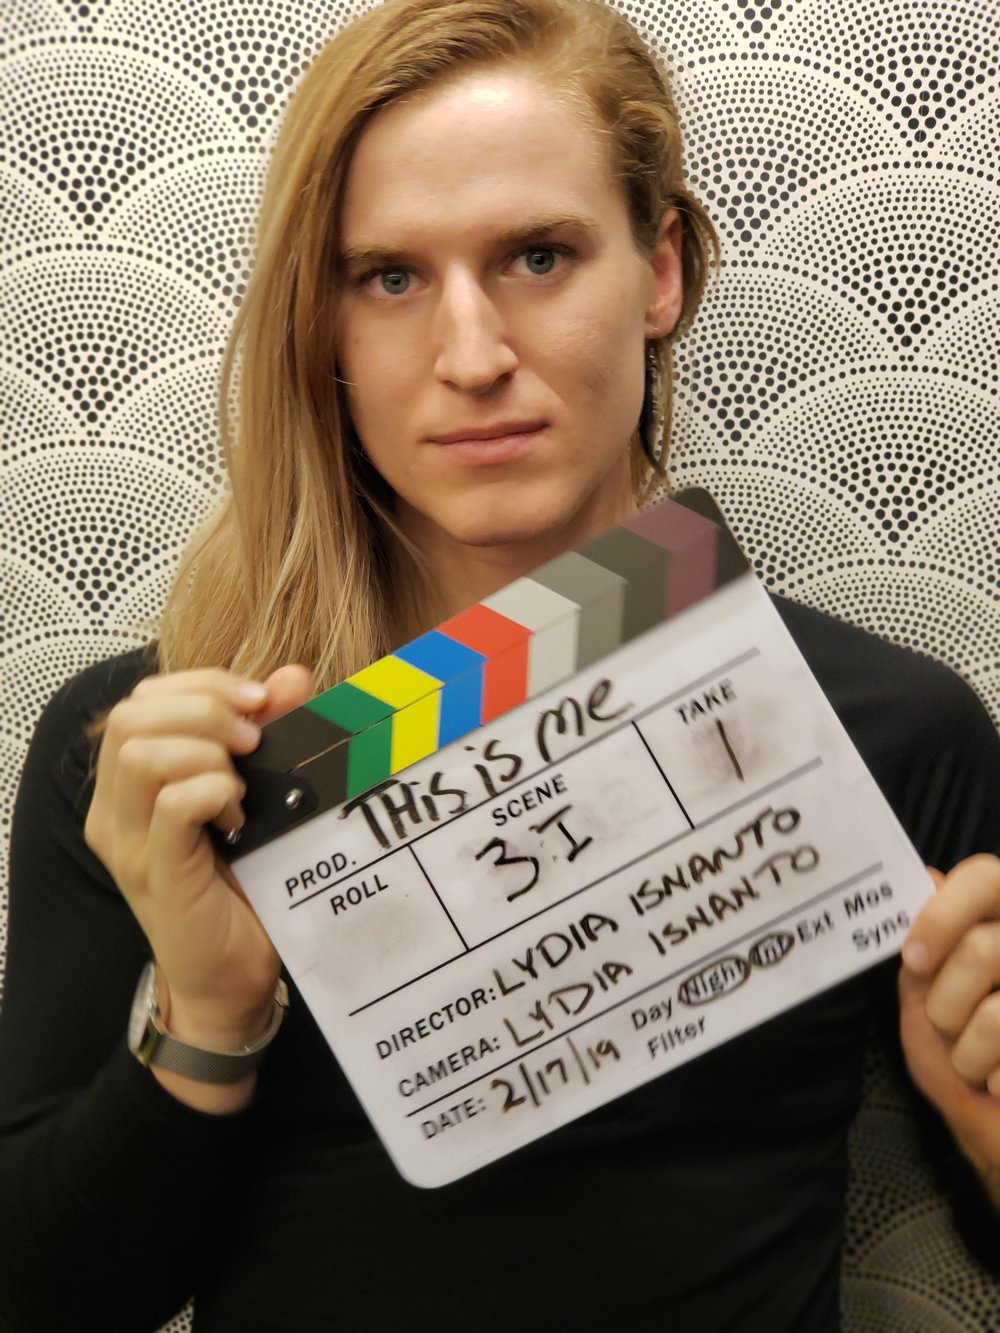 Evelyn Sifton - is a filmmaker, professional Cyclist, and an advocate for LGBTQ+ inclusion in sport from Canada now living part-time in Austin, Texas. Learn more about Eve's world on this week's Member Monday!